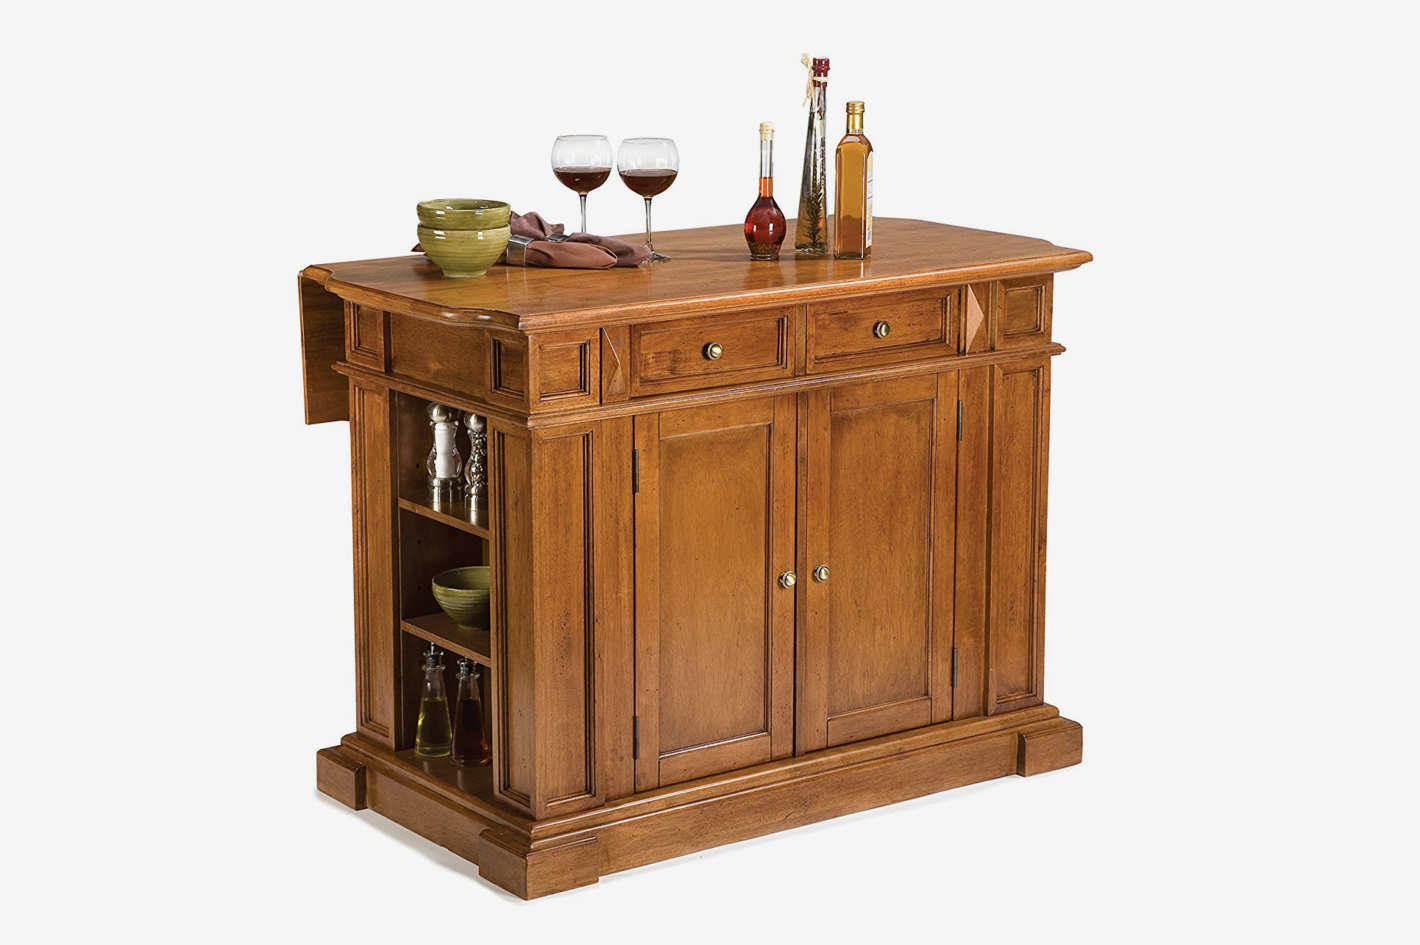 Home Styles 5004-94 Kitchen Island, Distressed Oak Finish